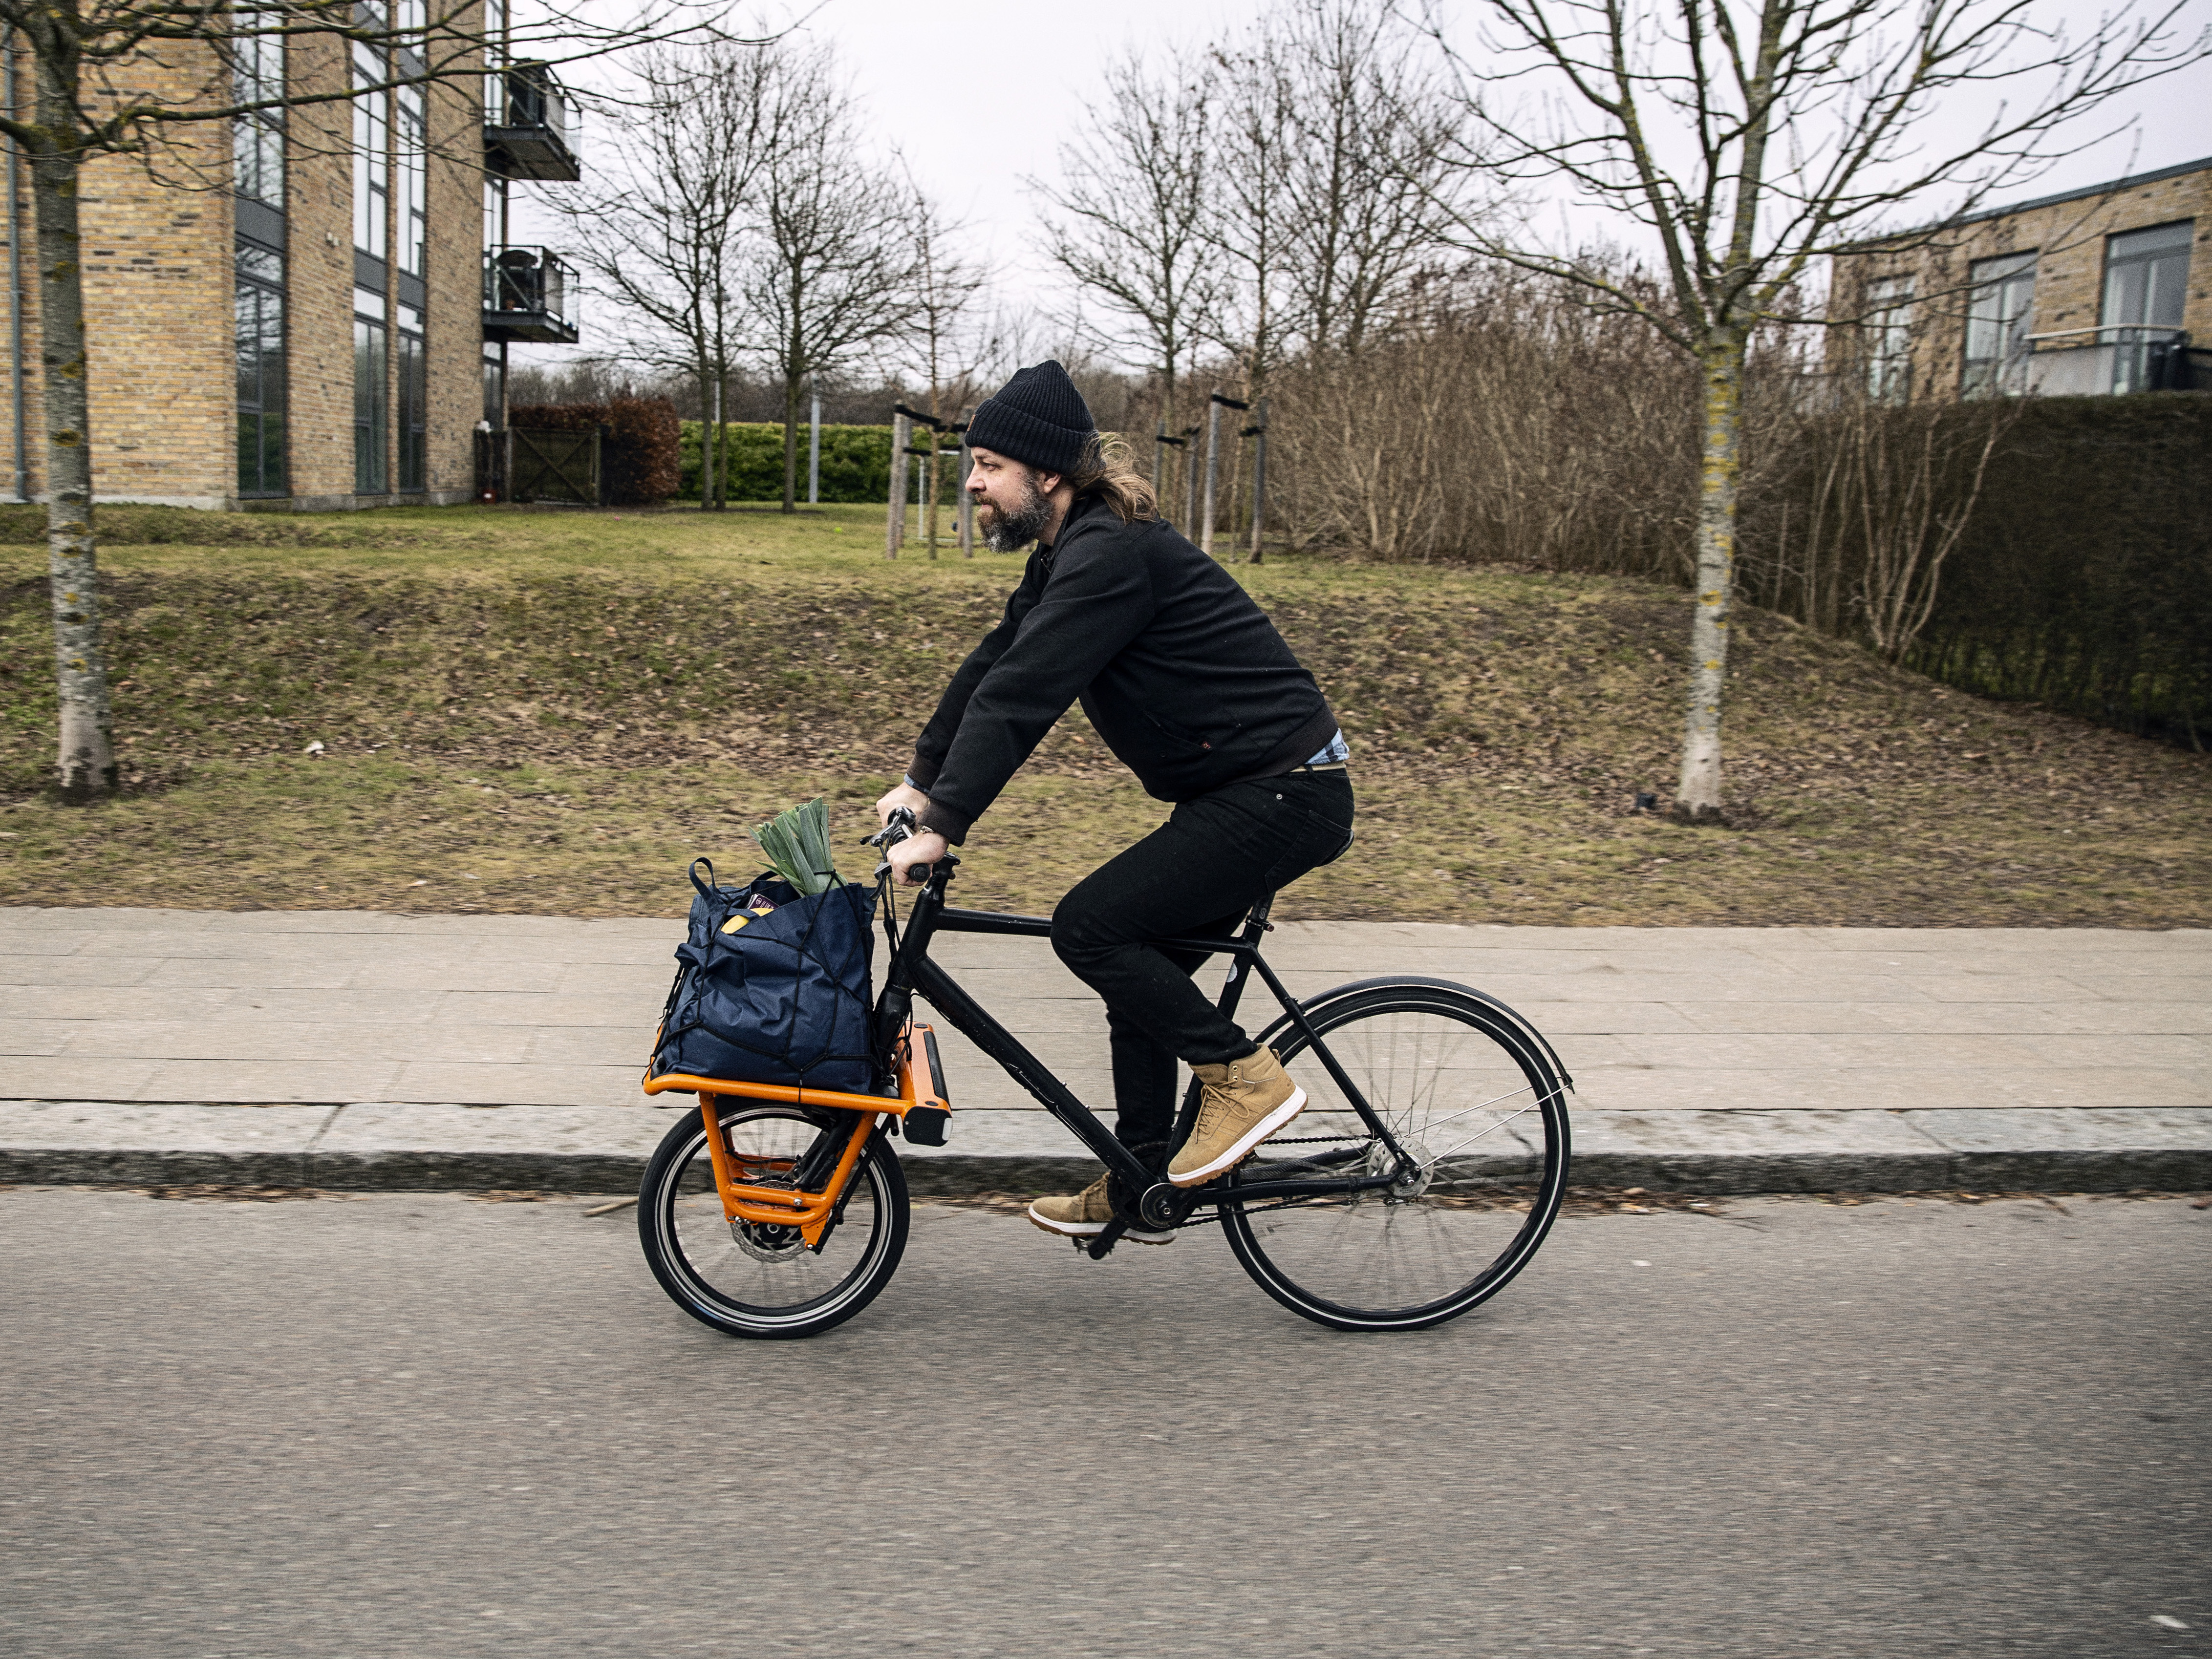 The CargoDrive kit is said to be compatible with most upright bicycles